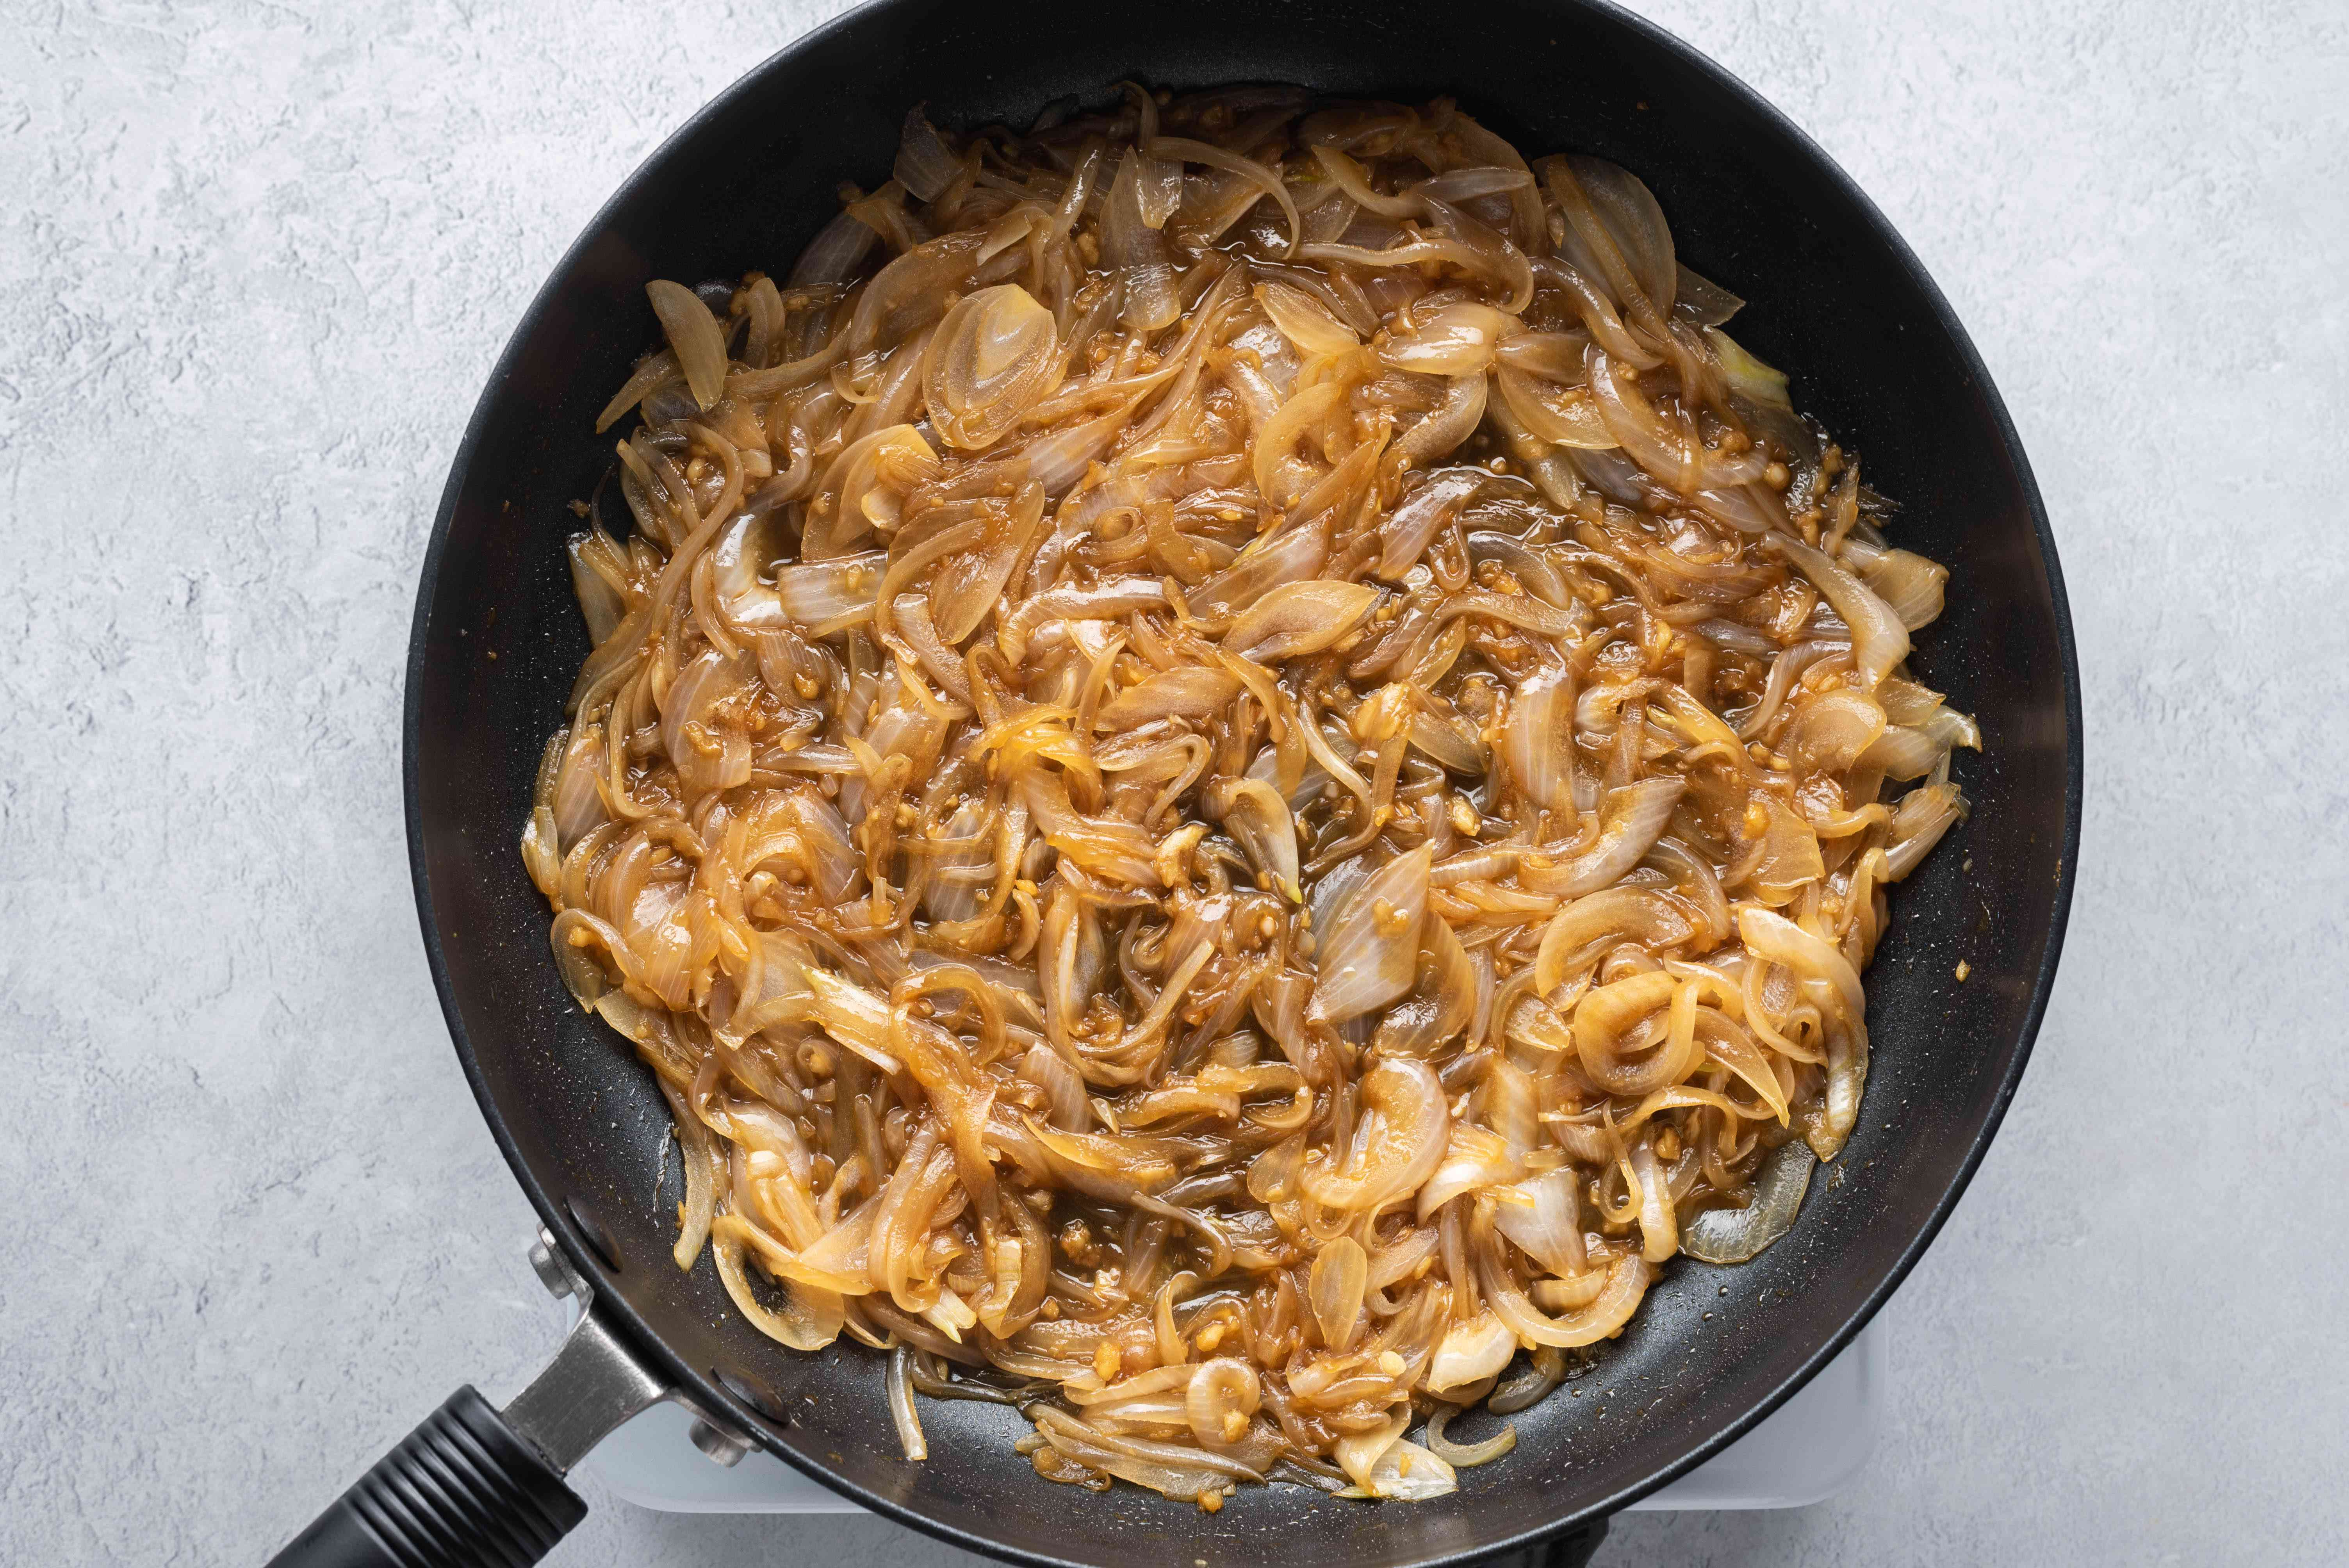 Stir the brown sugar and vinegar into the onions